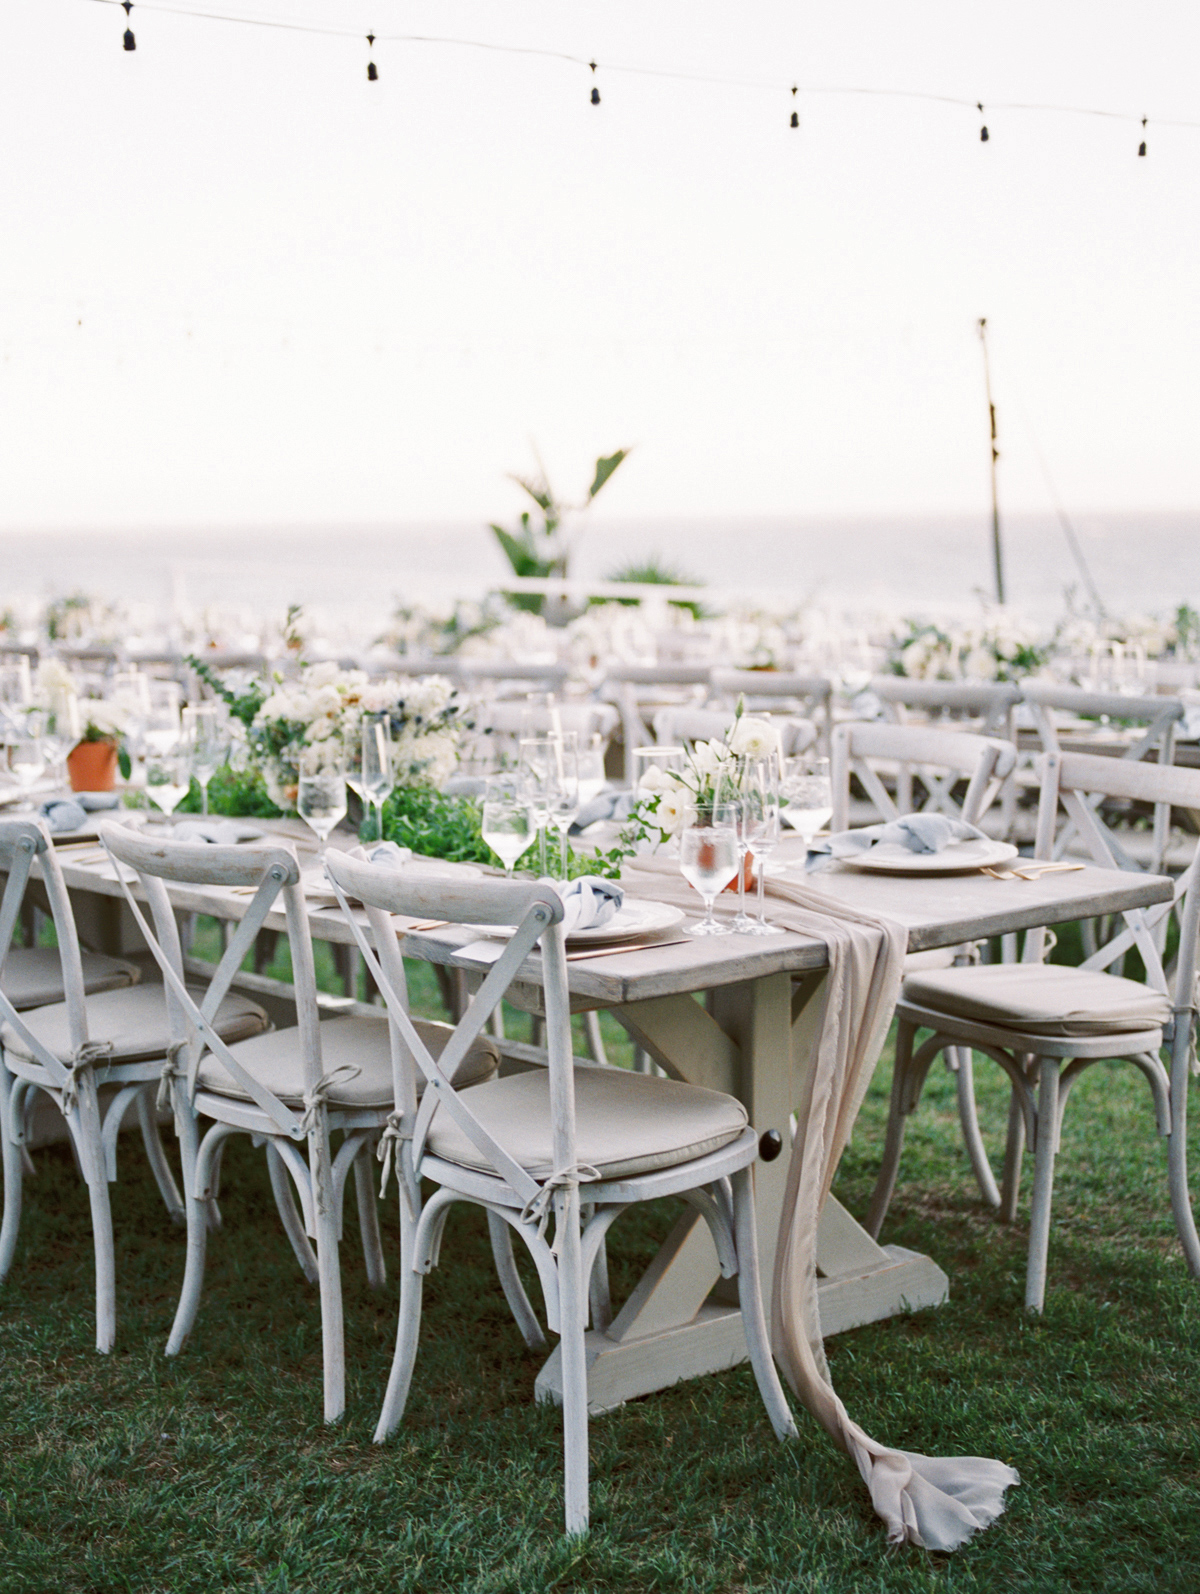 bettina gino wedding reception tables on grass